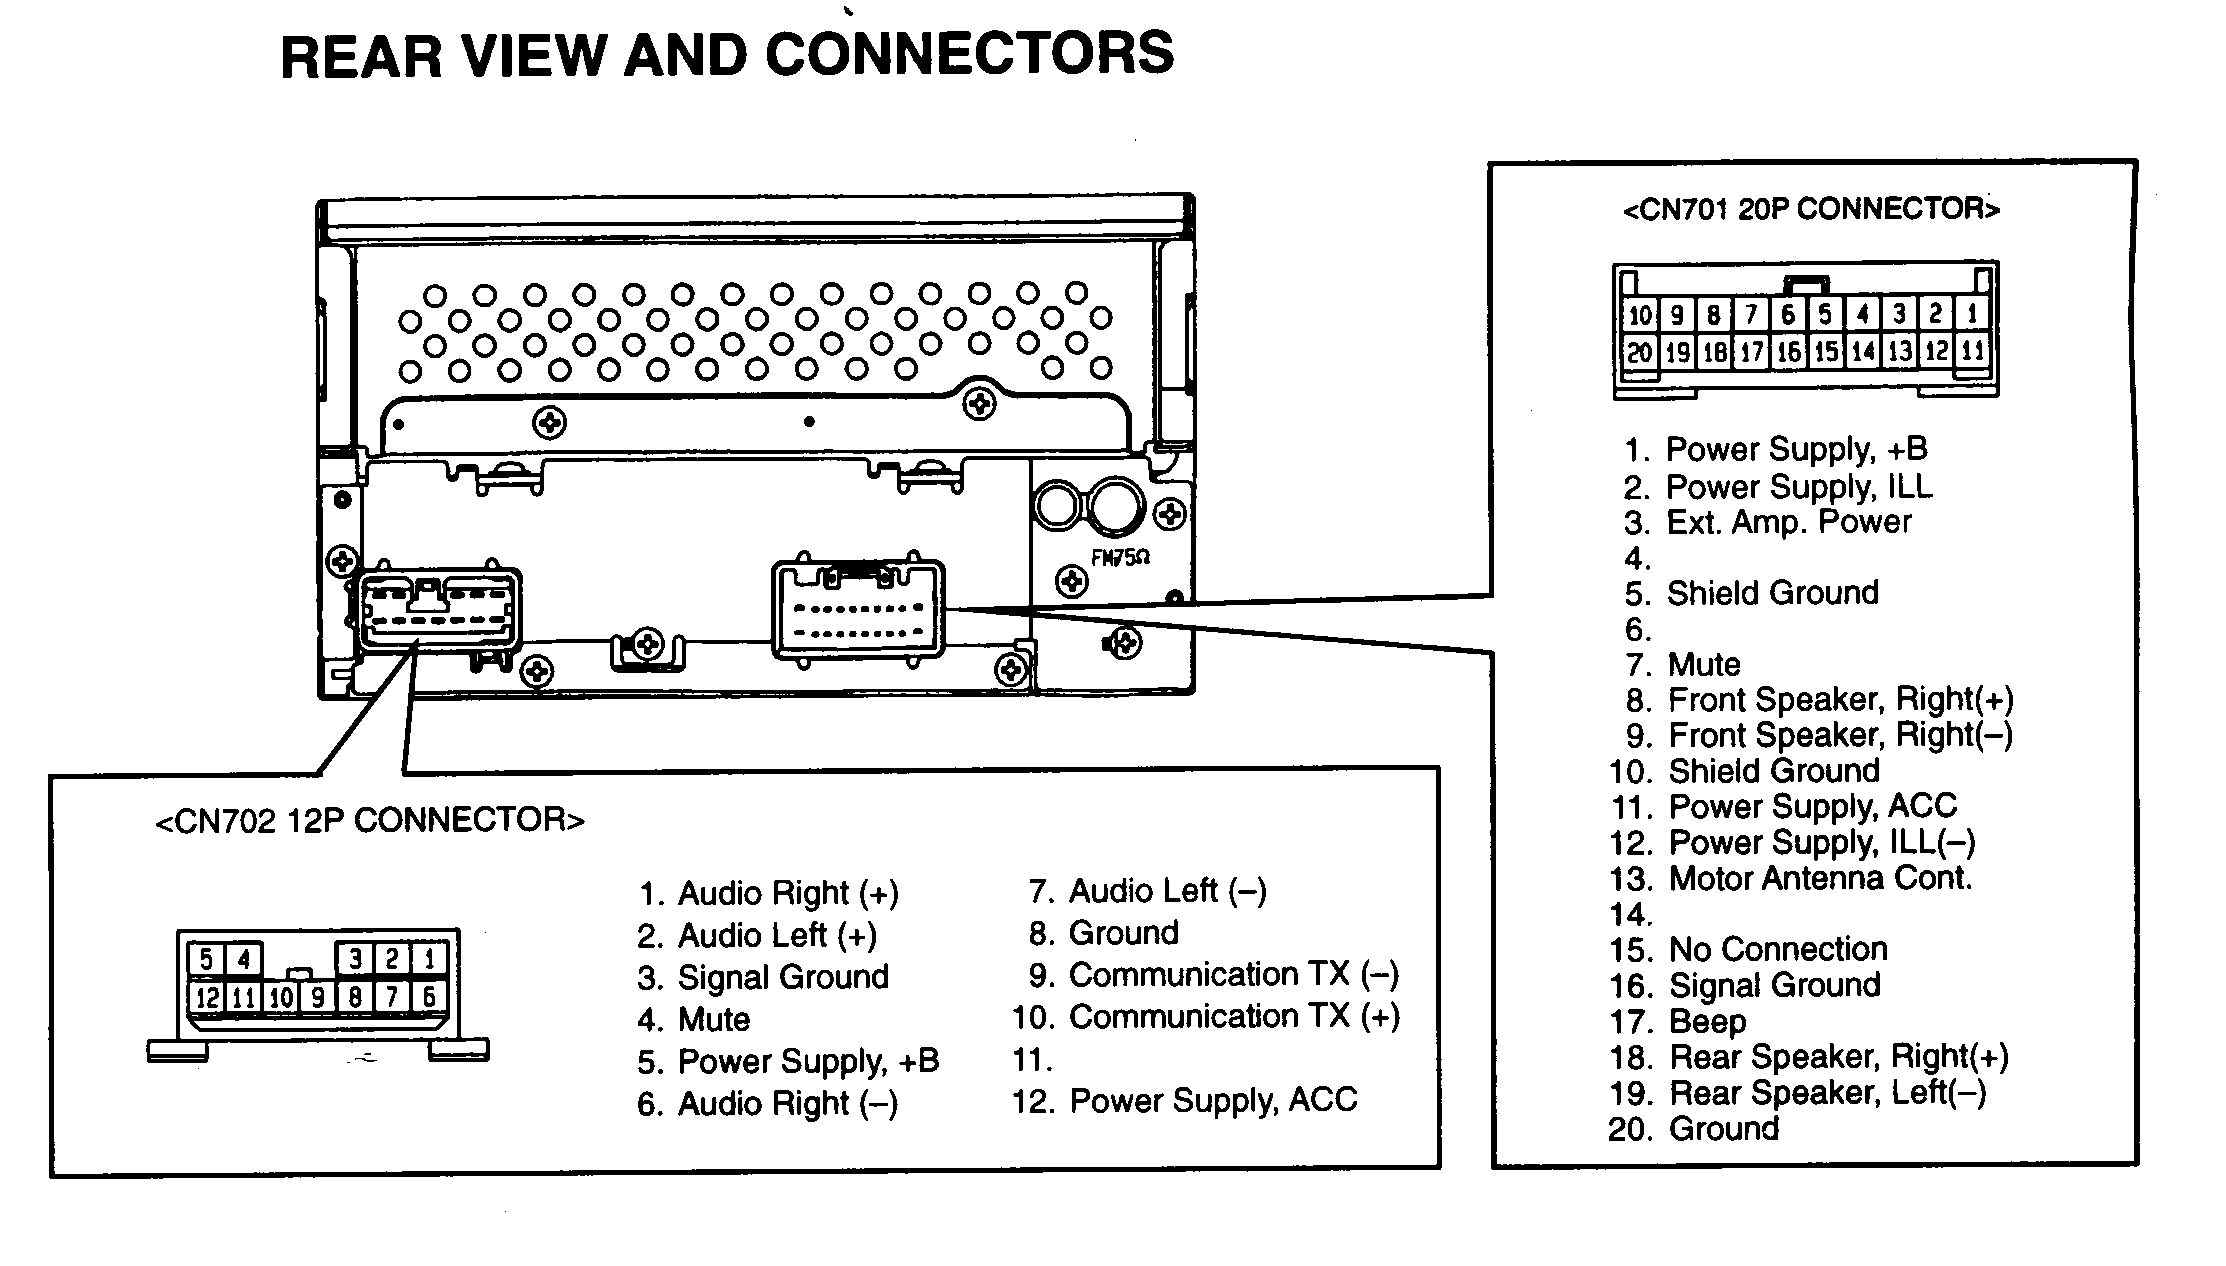 Factory Radio Wire Diagram - Wiring Diagram All Data on 2007 tahoe door speakers, 2007 tahoe firing order, 2007 tahoe coil diagram, 2007 tahoe fuel pump, 2007 tahoe repair manual, 2007 tahoe charging system, 2007 tahoe belt routing, 2007 tahoe rear suspension, 2007 tahoe parts diagram, 2007 tahoe frame diagram, 2007 tahoe ac diagram, 2007 tahoe steering diagram, 2007 tahoe engine diagram, 2007 tahoe oil filter, tahoe body parts diagram, 2007 tahoe sensor diagram, 2007 tahoe air cleaner, 2007 tahoe fuel tank, 2007 tahoe door sensor, 2007 tahoe fuse diagram,